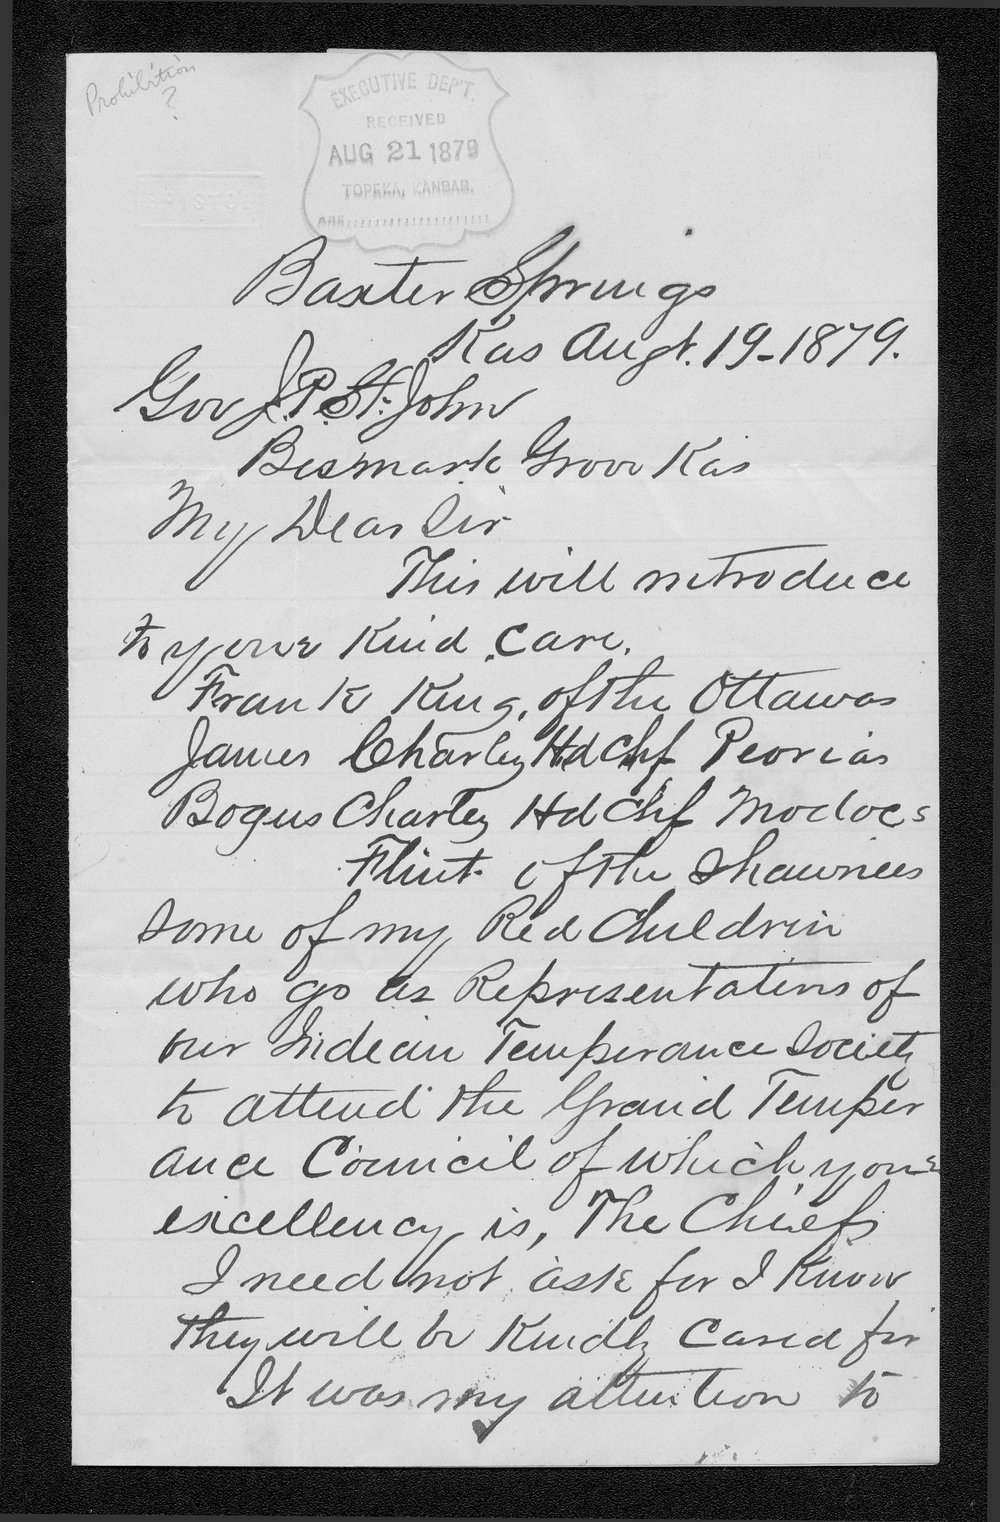 J.M. Haworth to Governor John St. John - 1